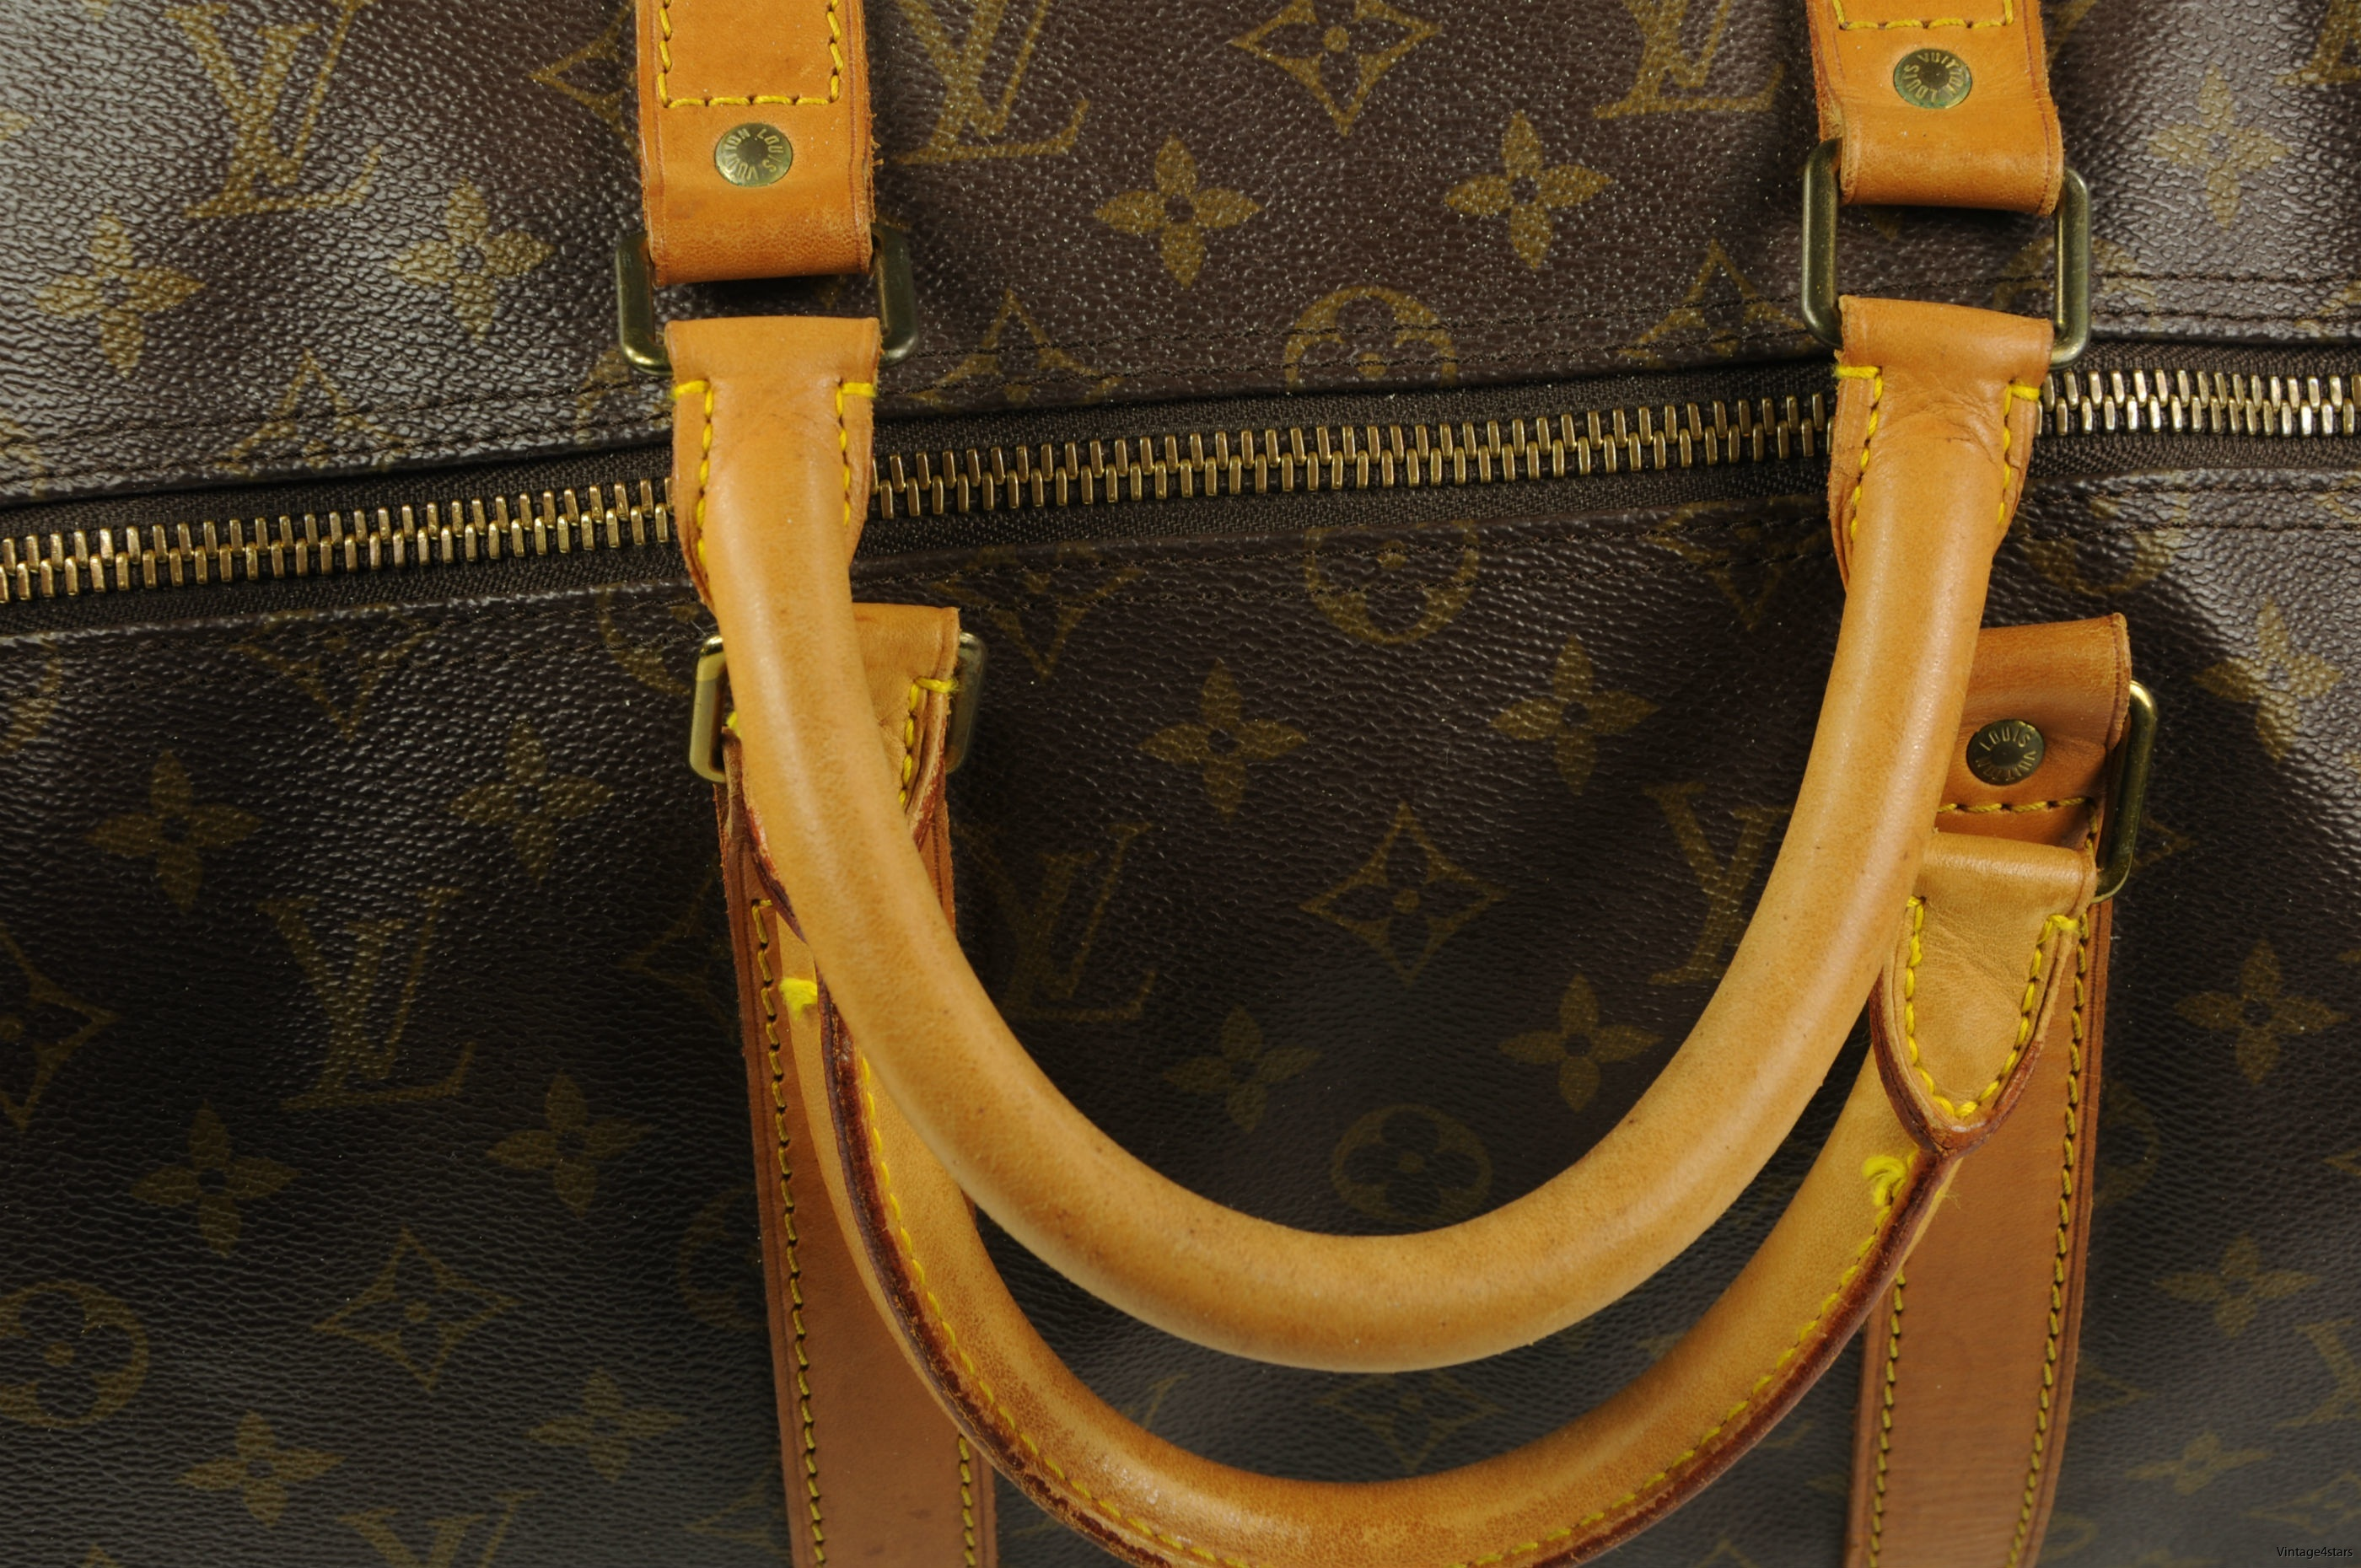 Louis Vuitton Keepall 50 10